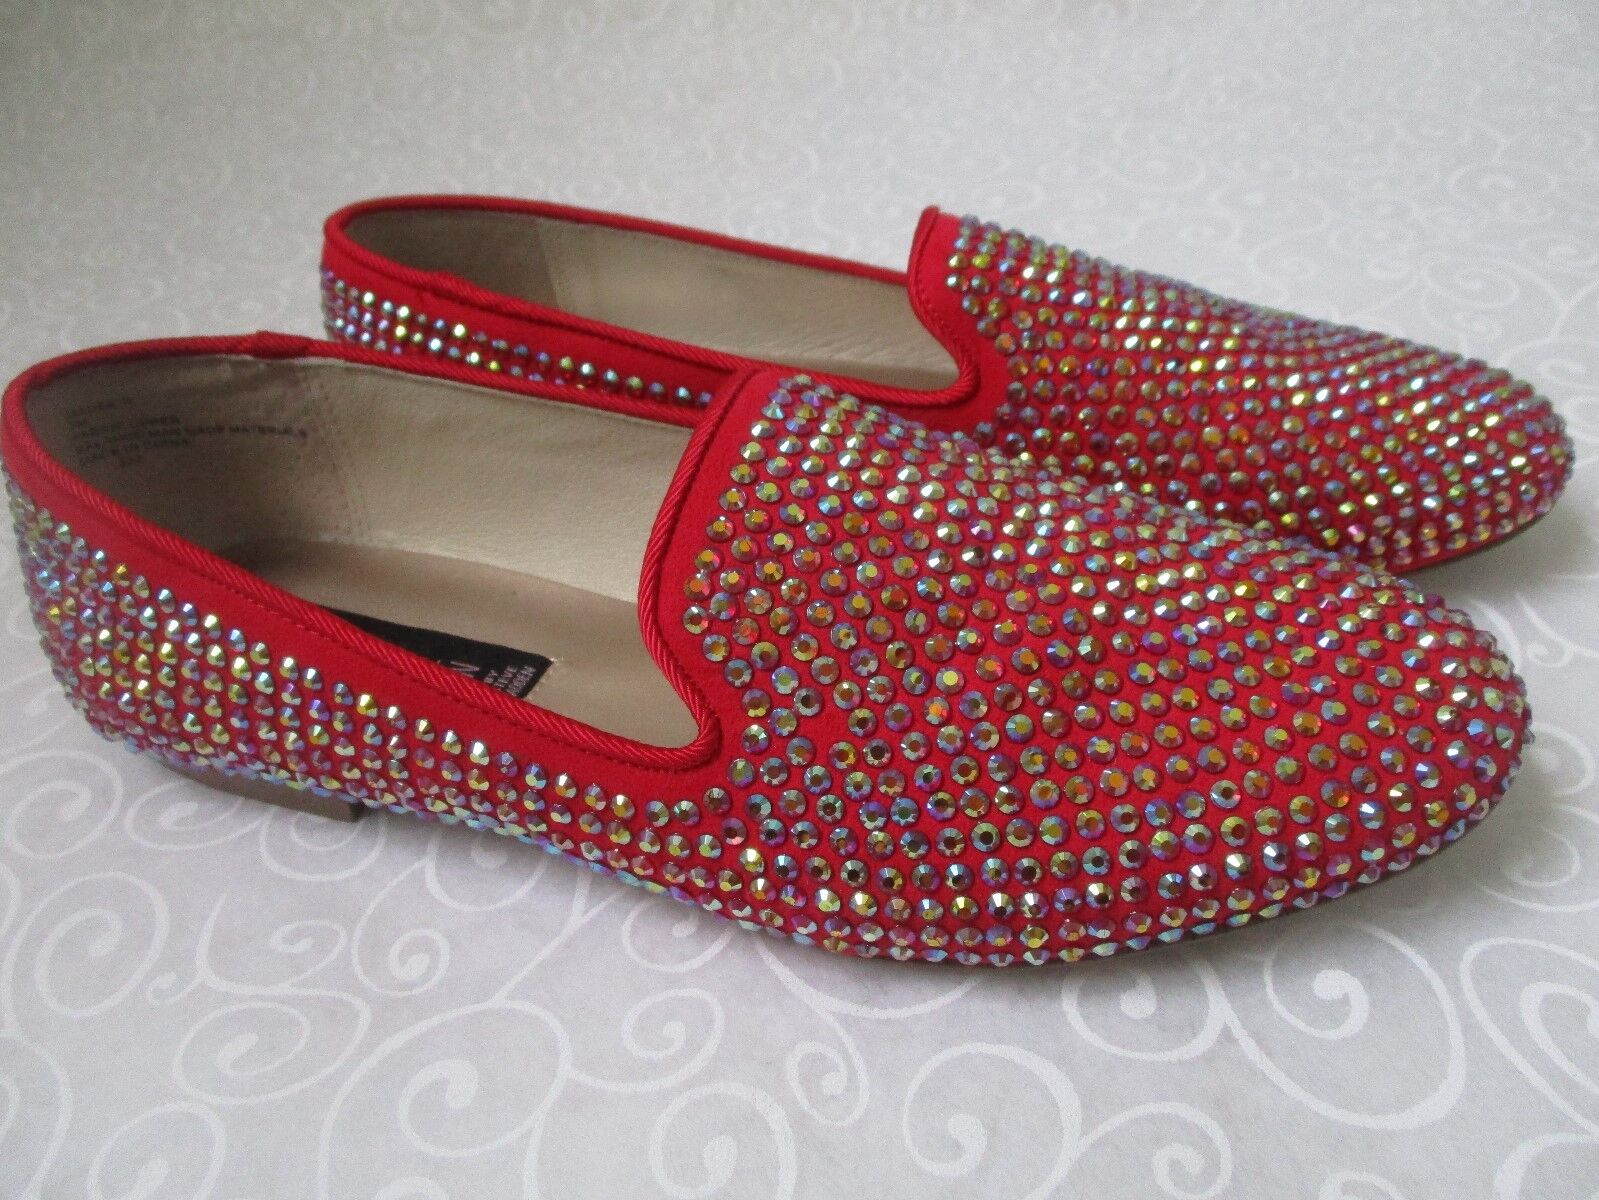 STEVEN BY STEVE MADDEN RED RHINESTONE FLATS SHOES SIZE 6 1/2 W - NEW